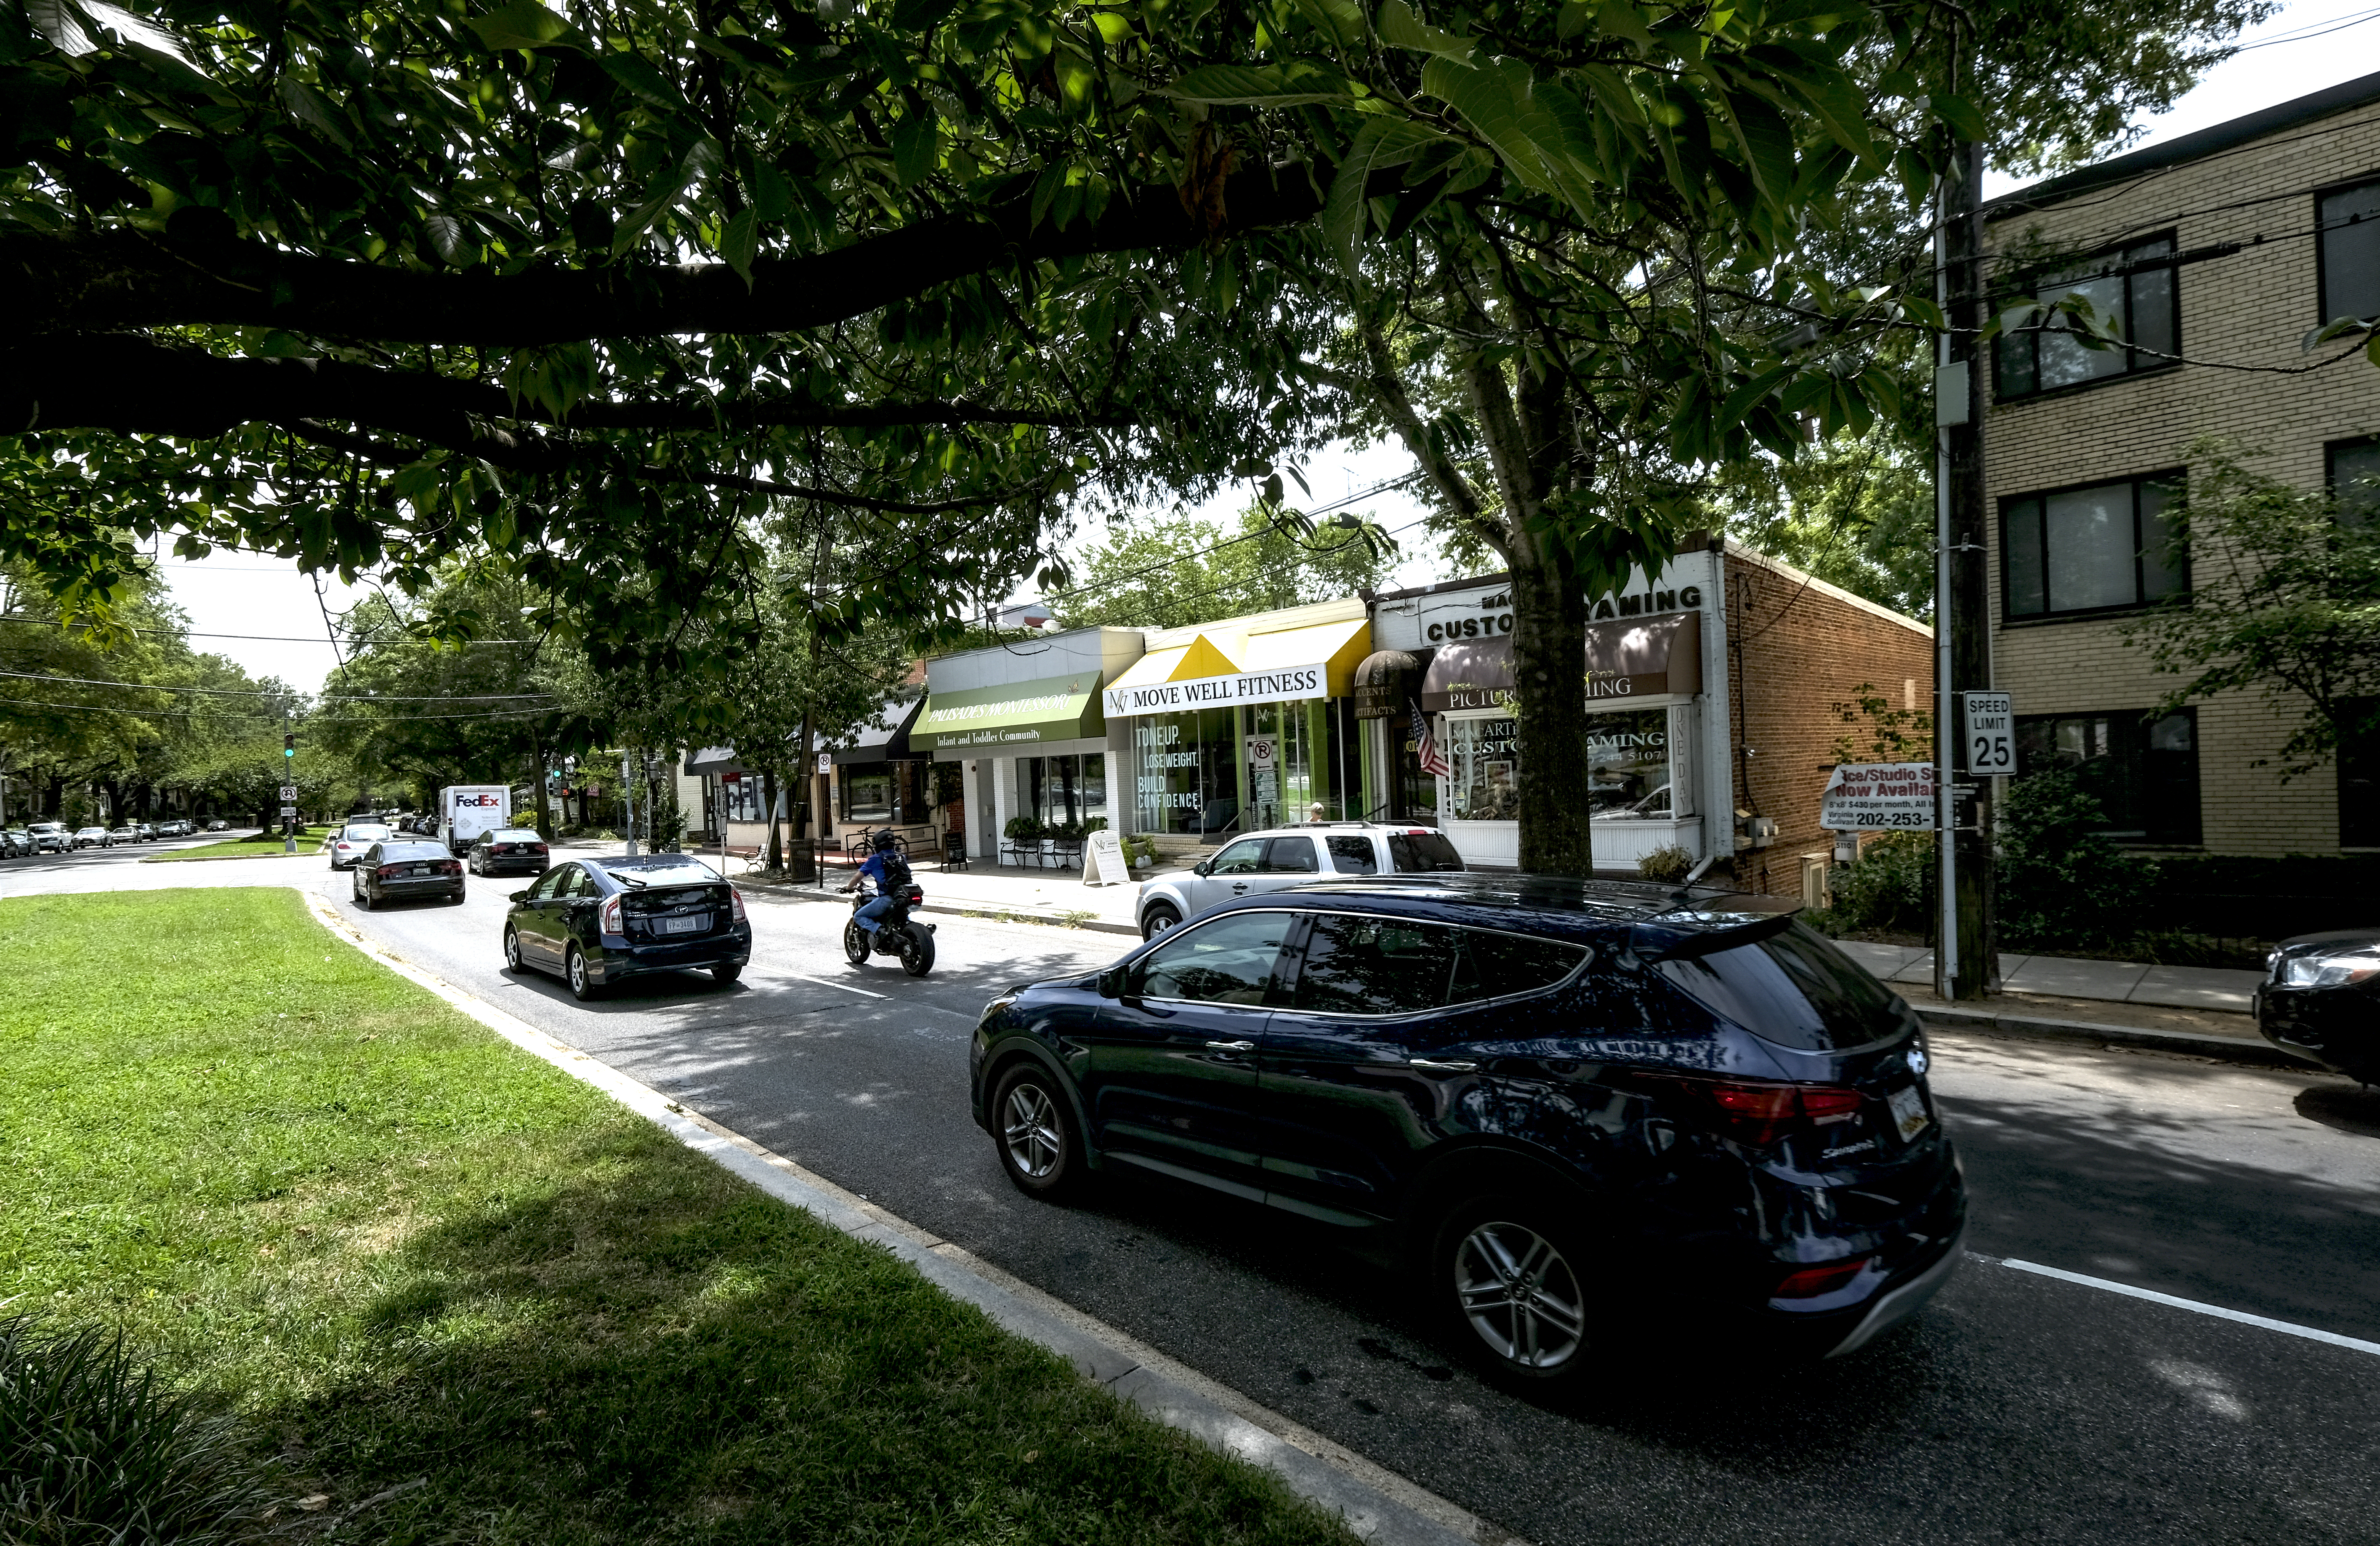 Cars travel along MacArthur Boulevard NW in D.C.'s Palisades neighborhood, with stores in the background.